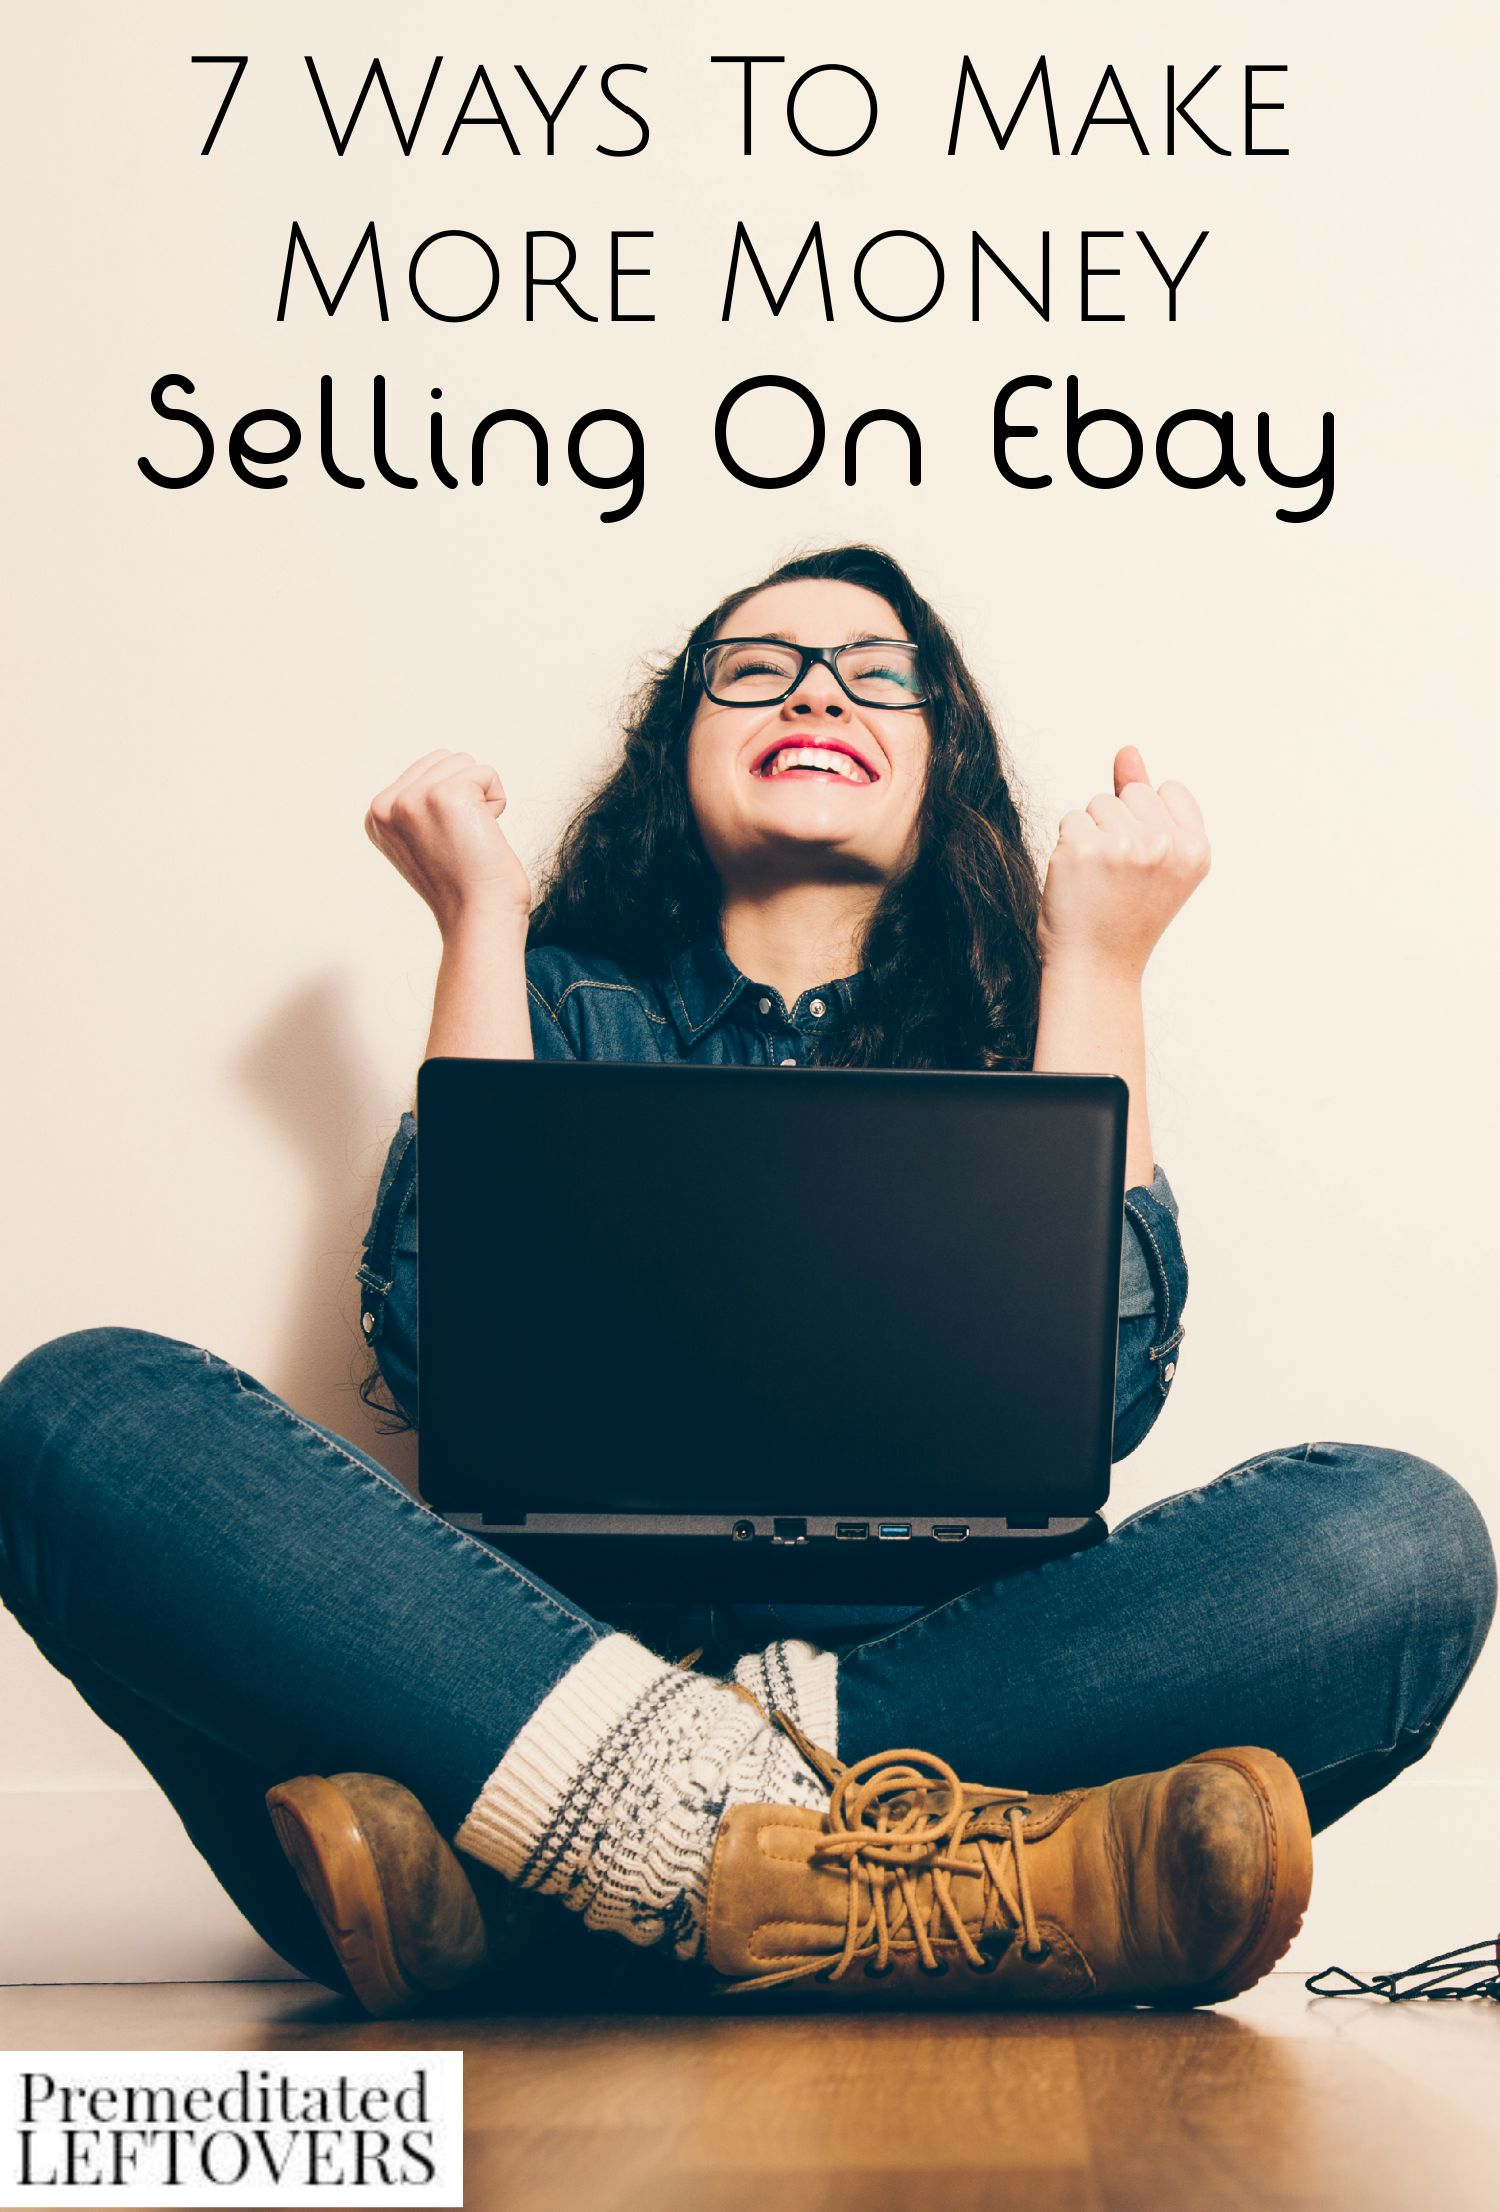 7 Ways to Make More Money Selling on Ebay- Learn the best ways to market your items and maximize your income with these helpful tips for selling on Ebay.